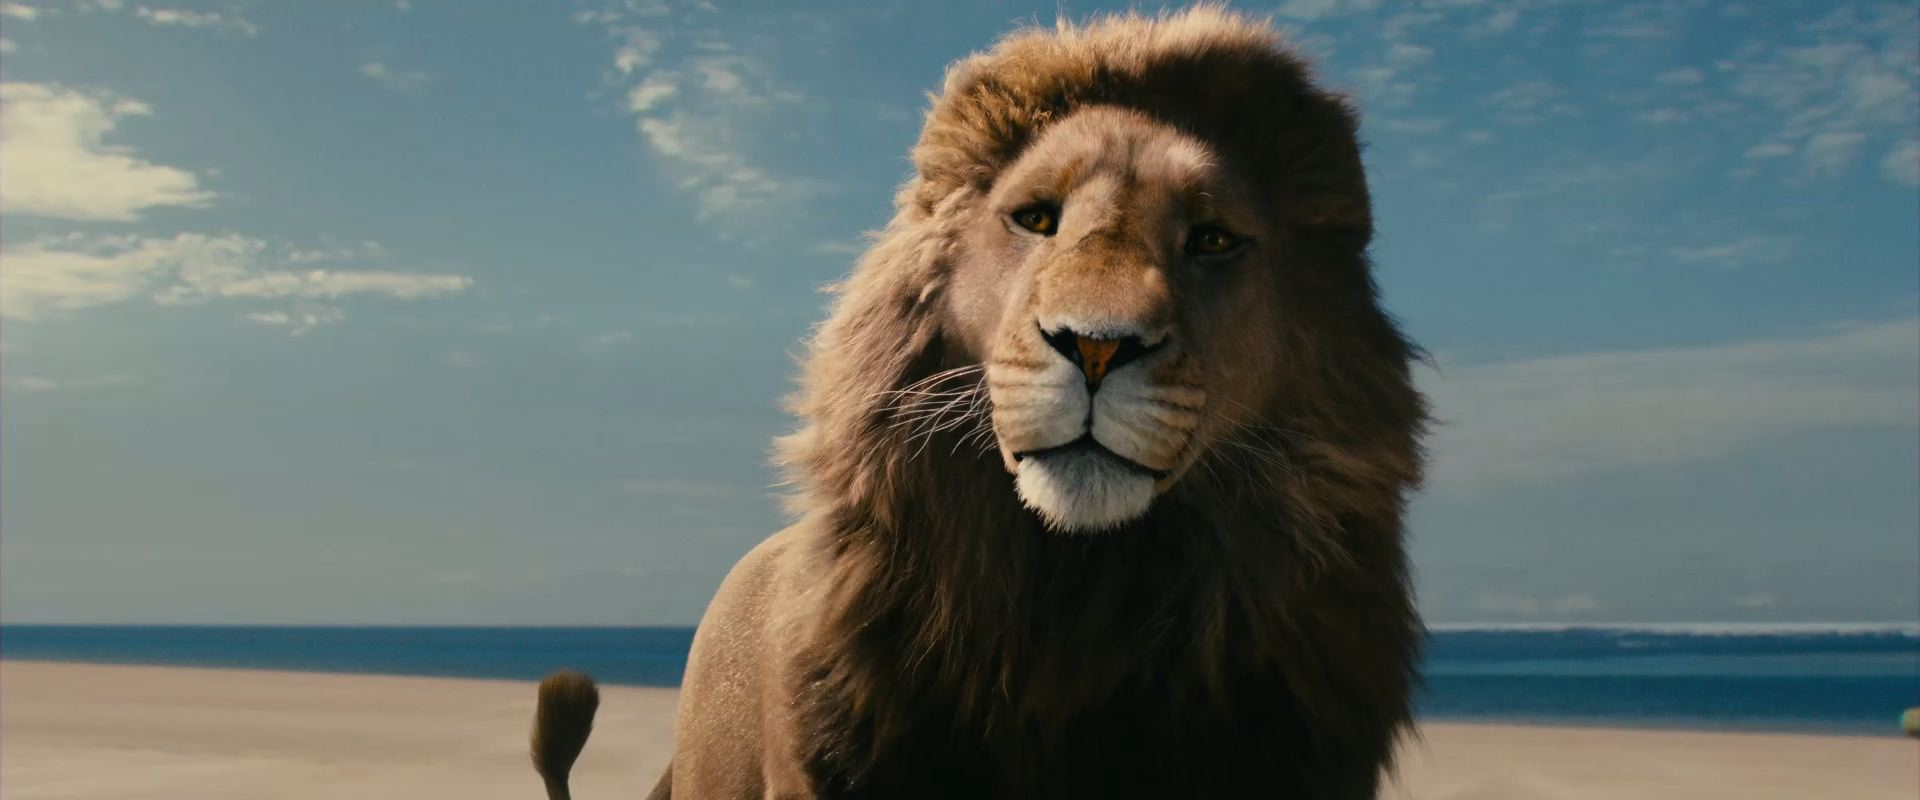 Aslan the Lion from the Movie The Chronicles of Narnia Voyage of the